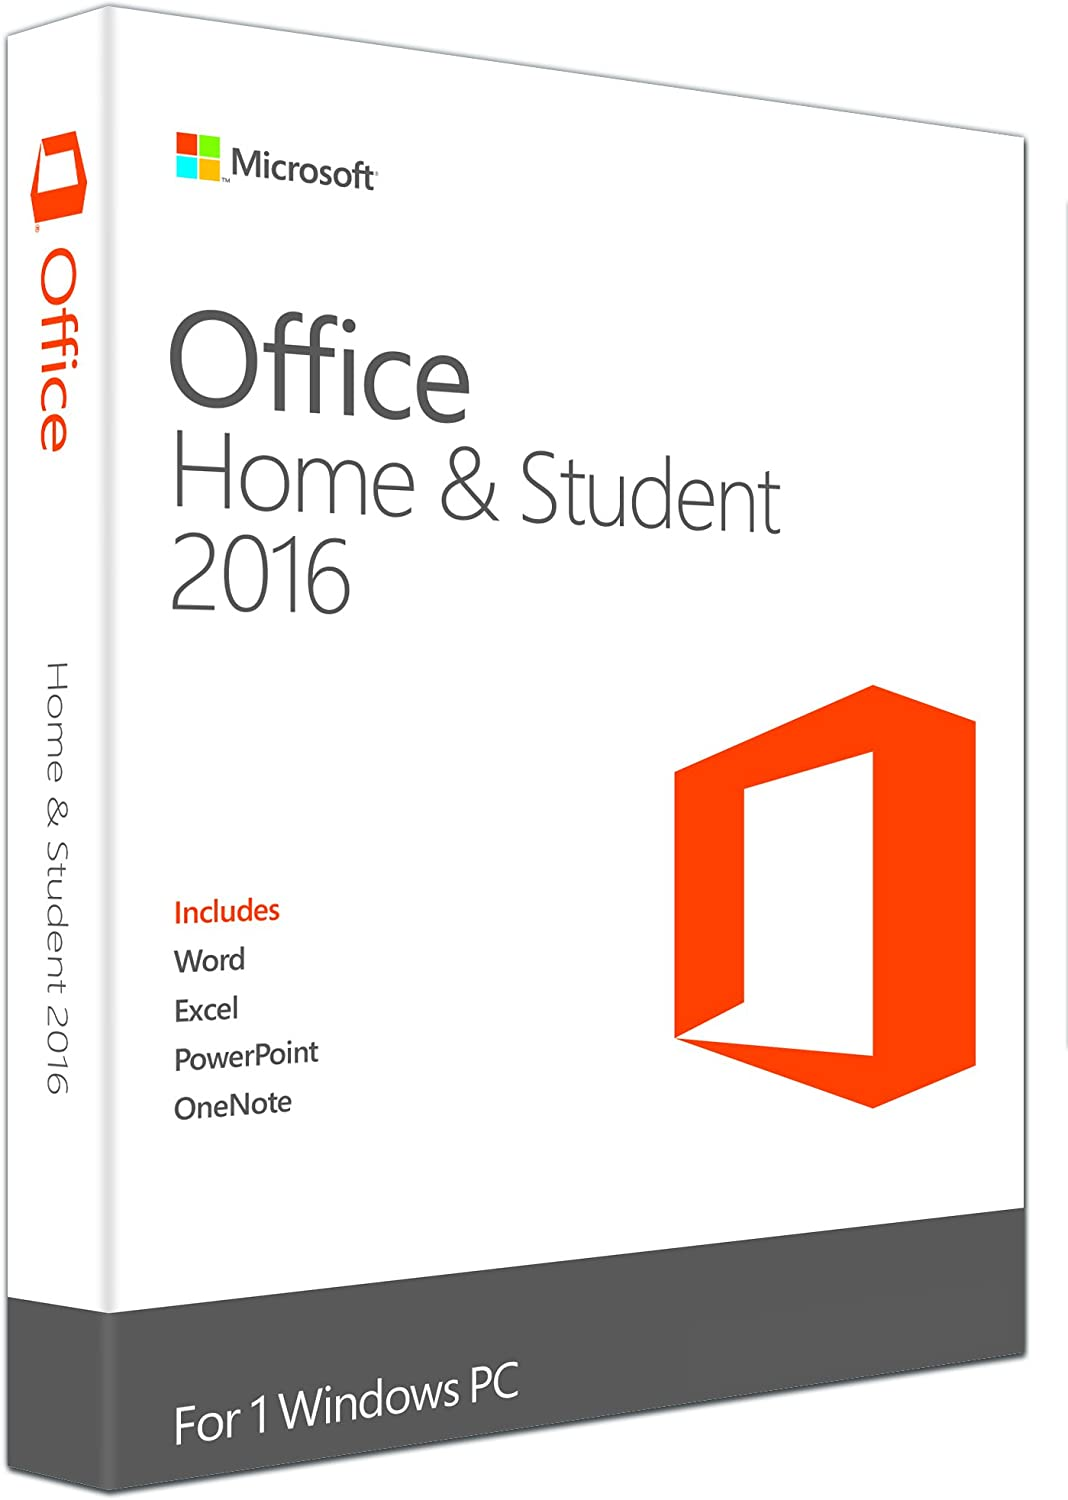 Microsoft Office Home and Student 2016 Windows English PC Key Same Day Shipping